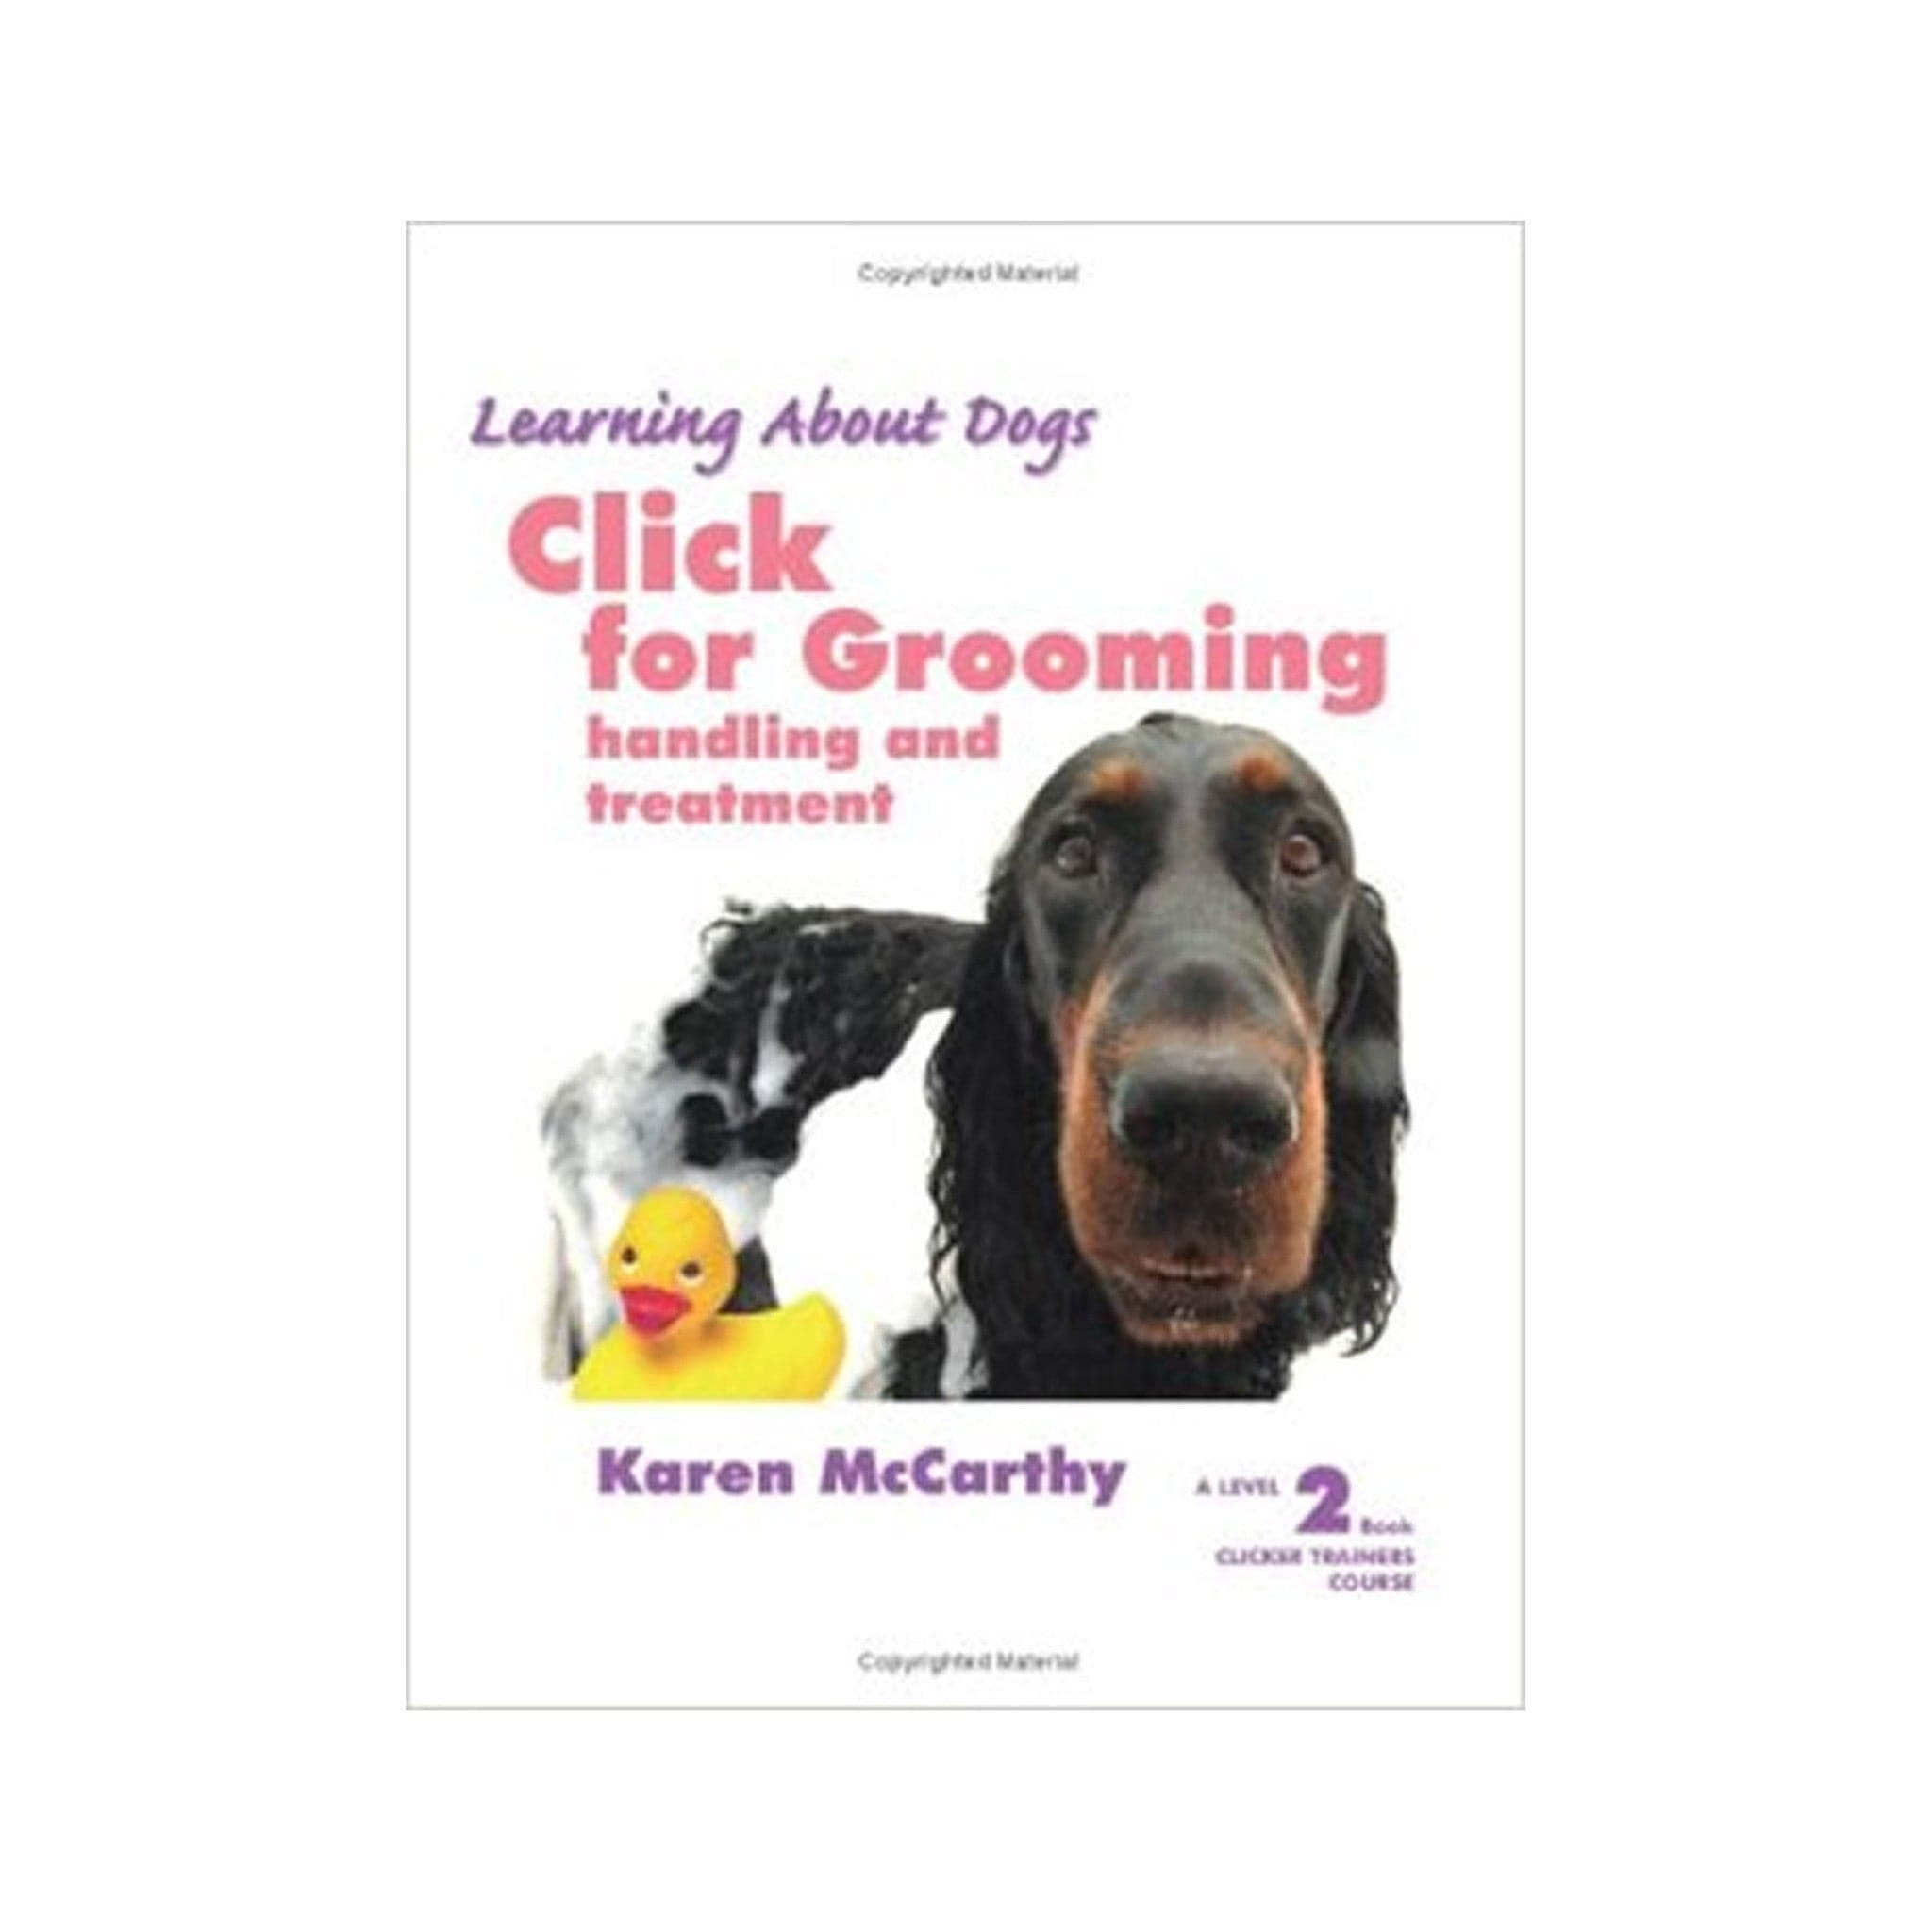 Click for Grooming: Handling and Treatment